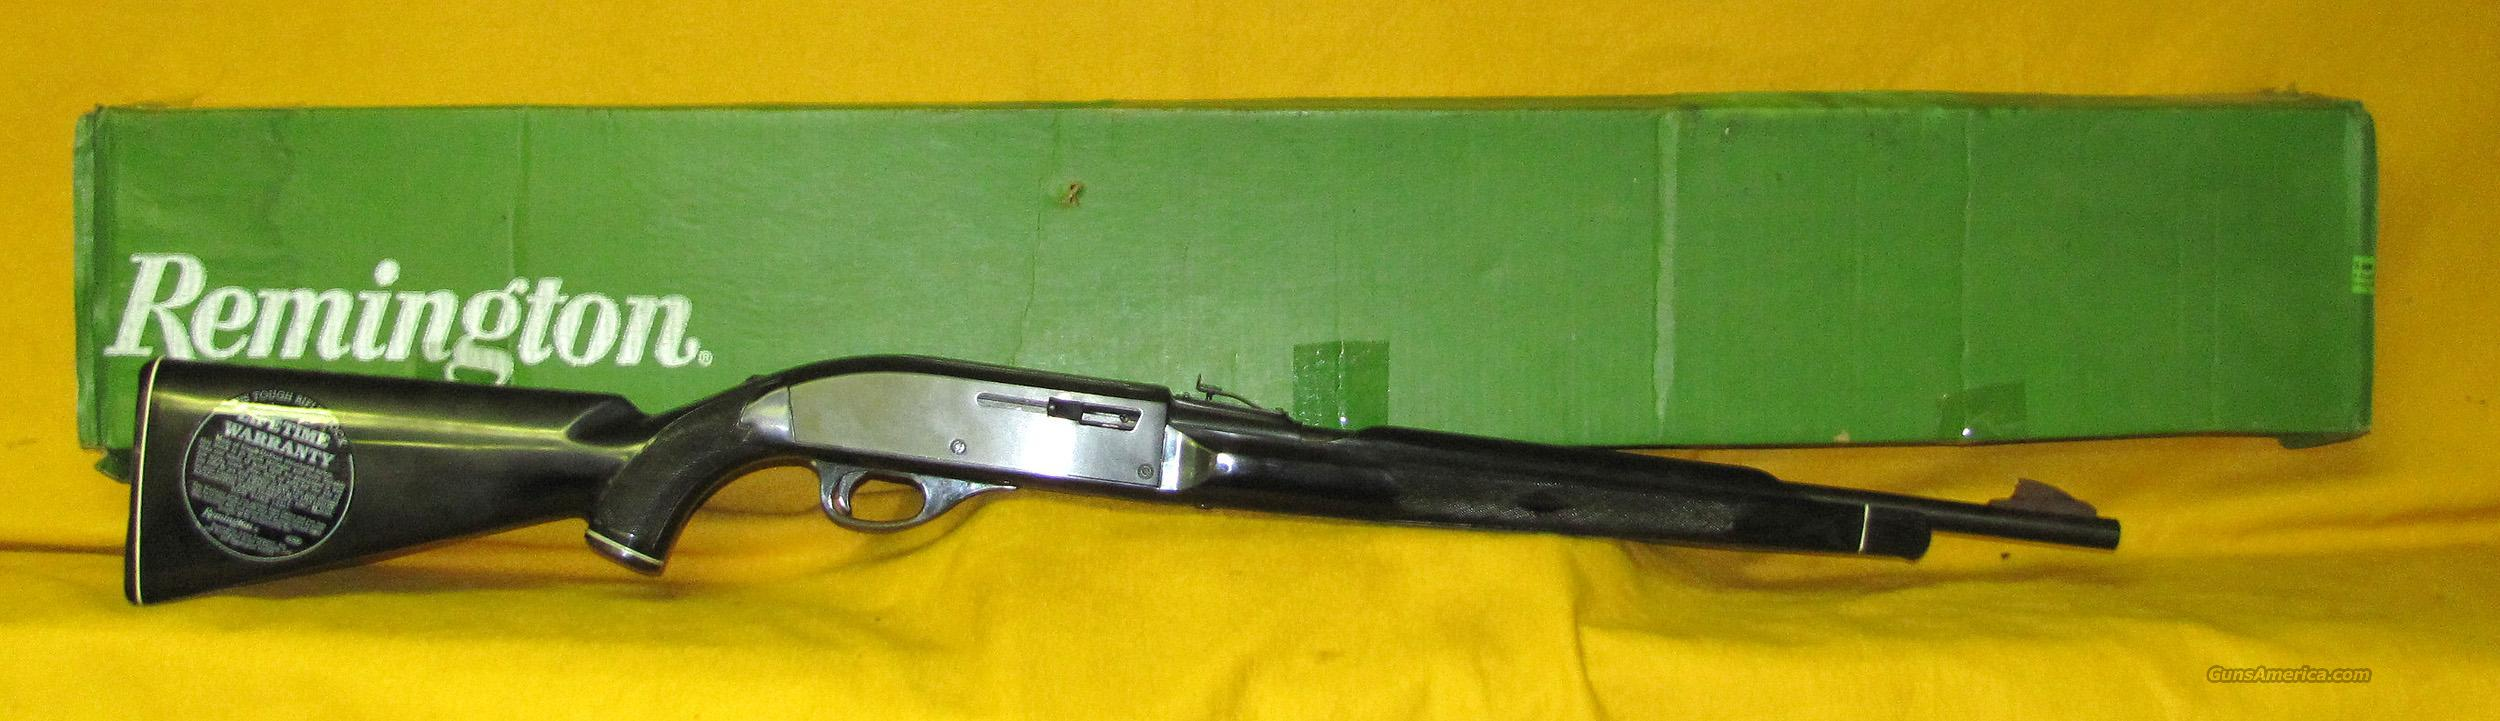 REMINGTON NYLON 66 BD (BLACK DIAMOND)  Guns > Rifles > Remington Rifles - Modern > .22 Rimfire Models